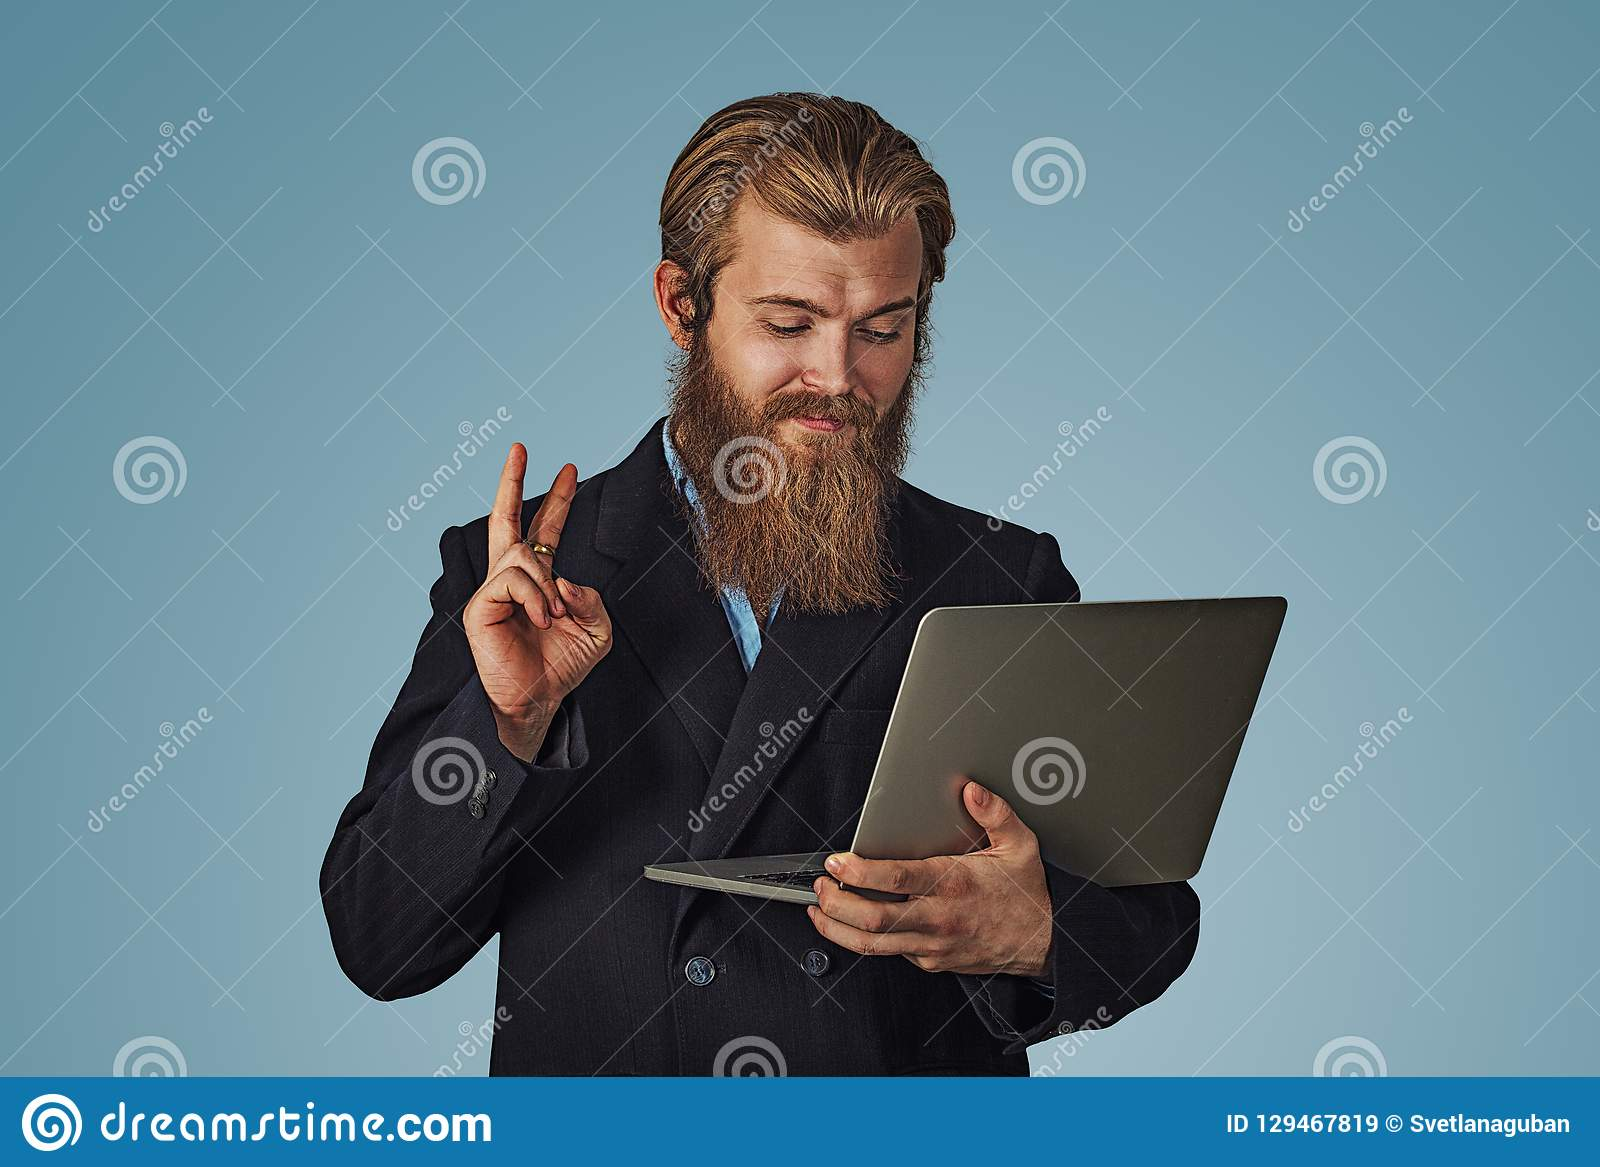 Man working on a laptop giving peace victory hand gesture